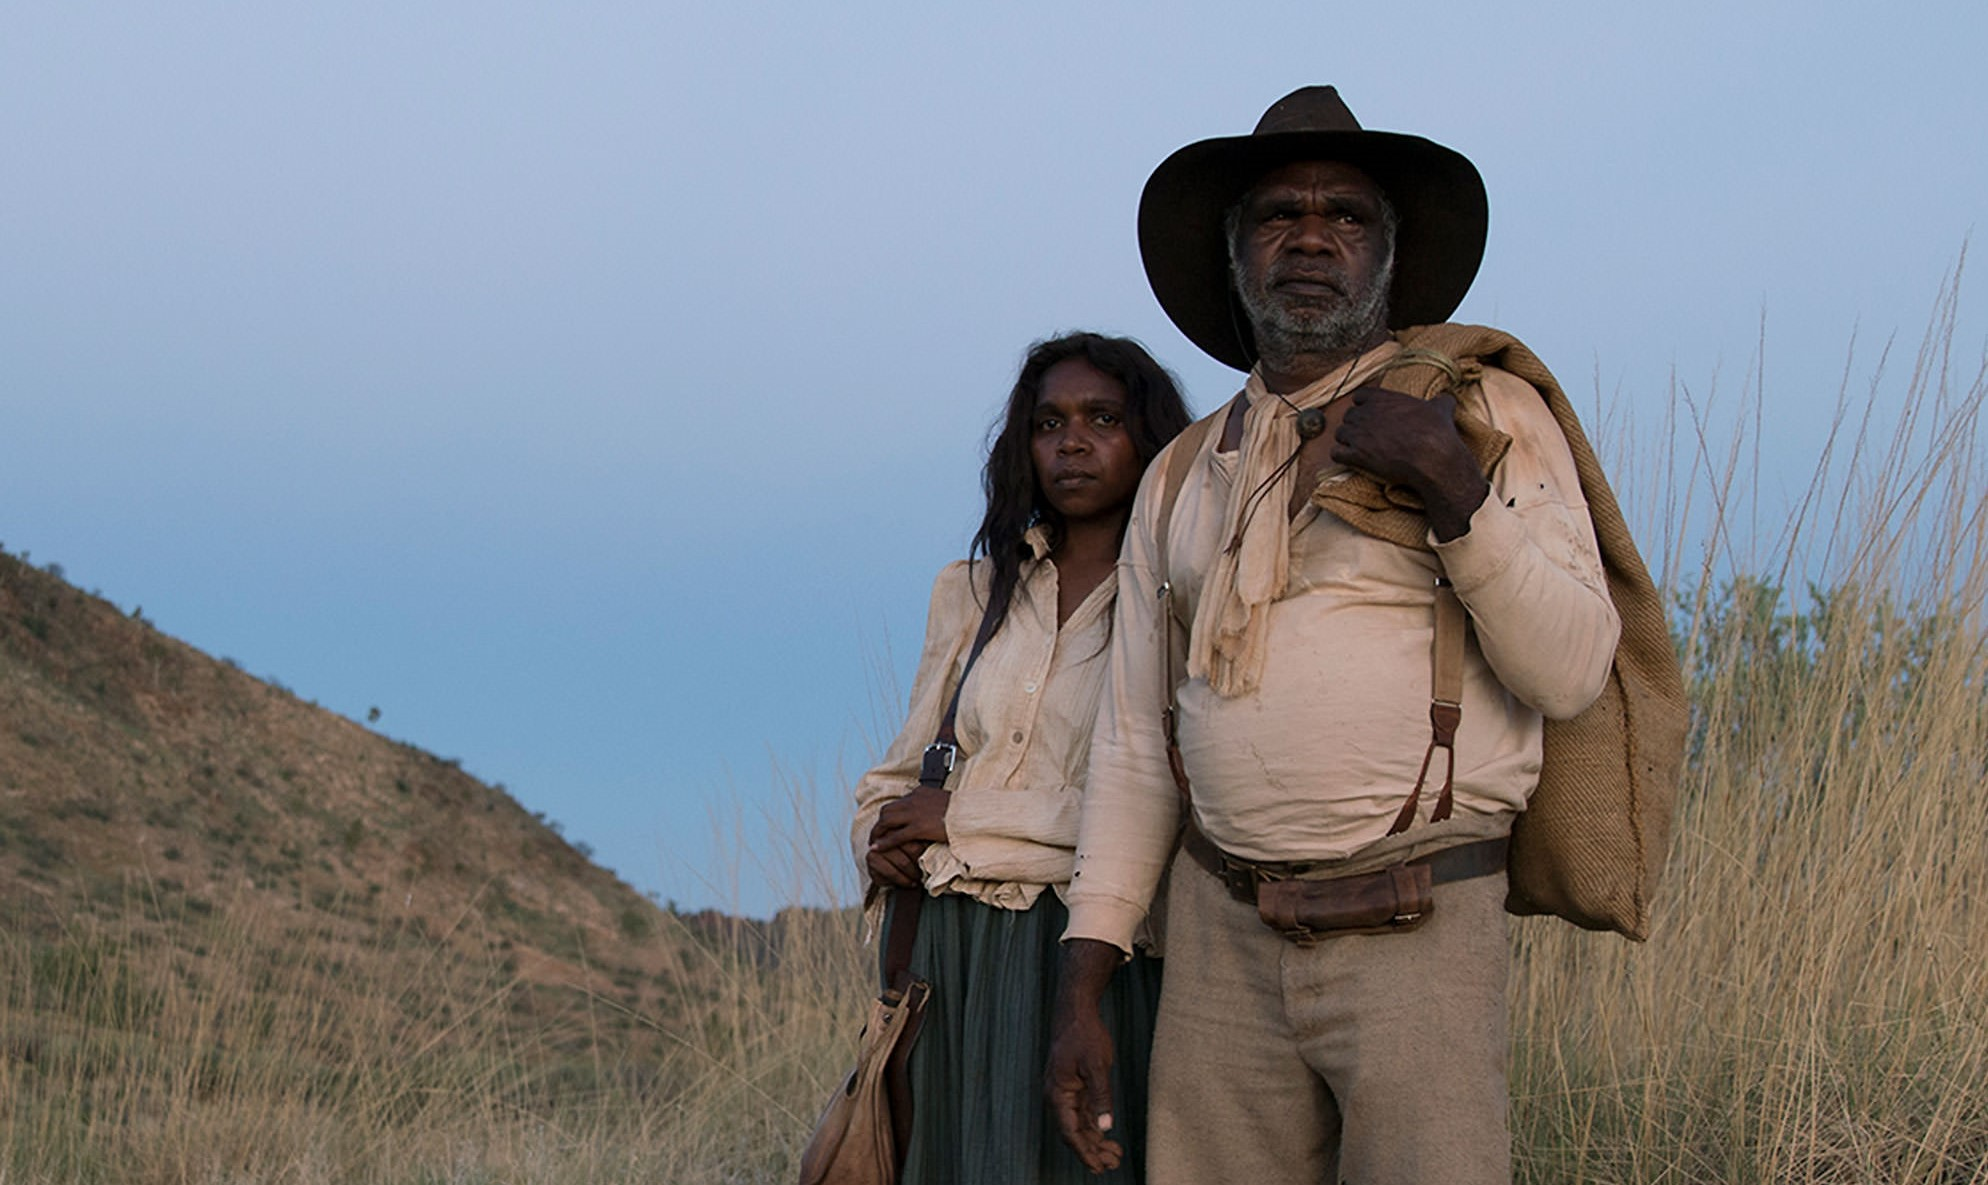 Sweet Country - 12pm - Centennial Park Library, 2227 23rd AvenueDescription